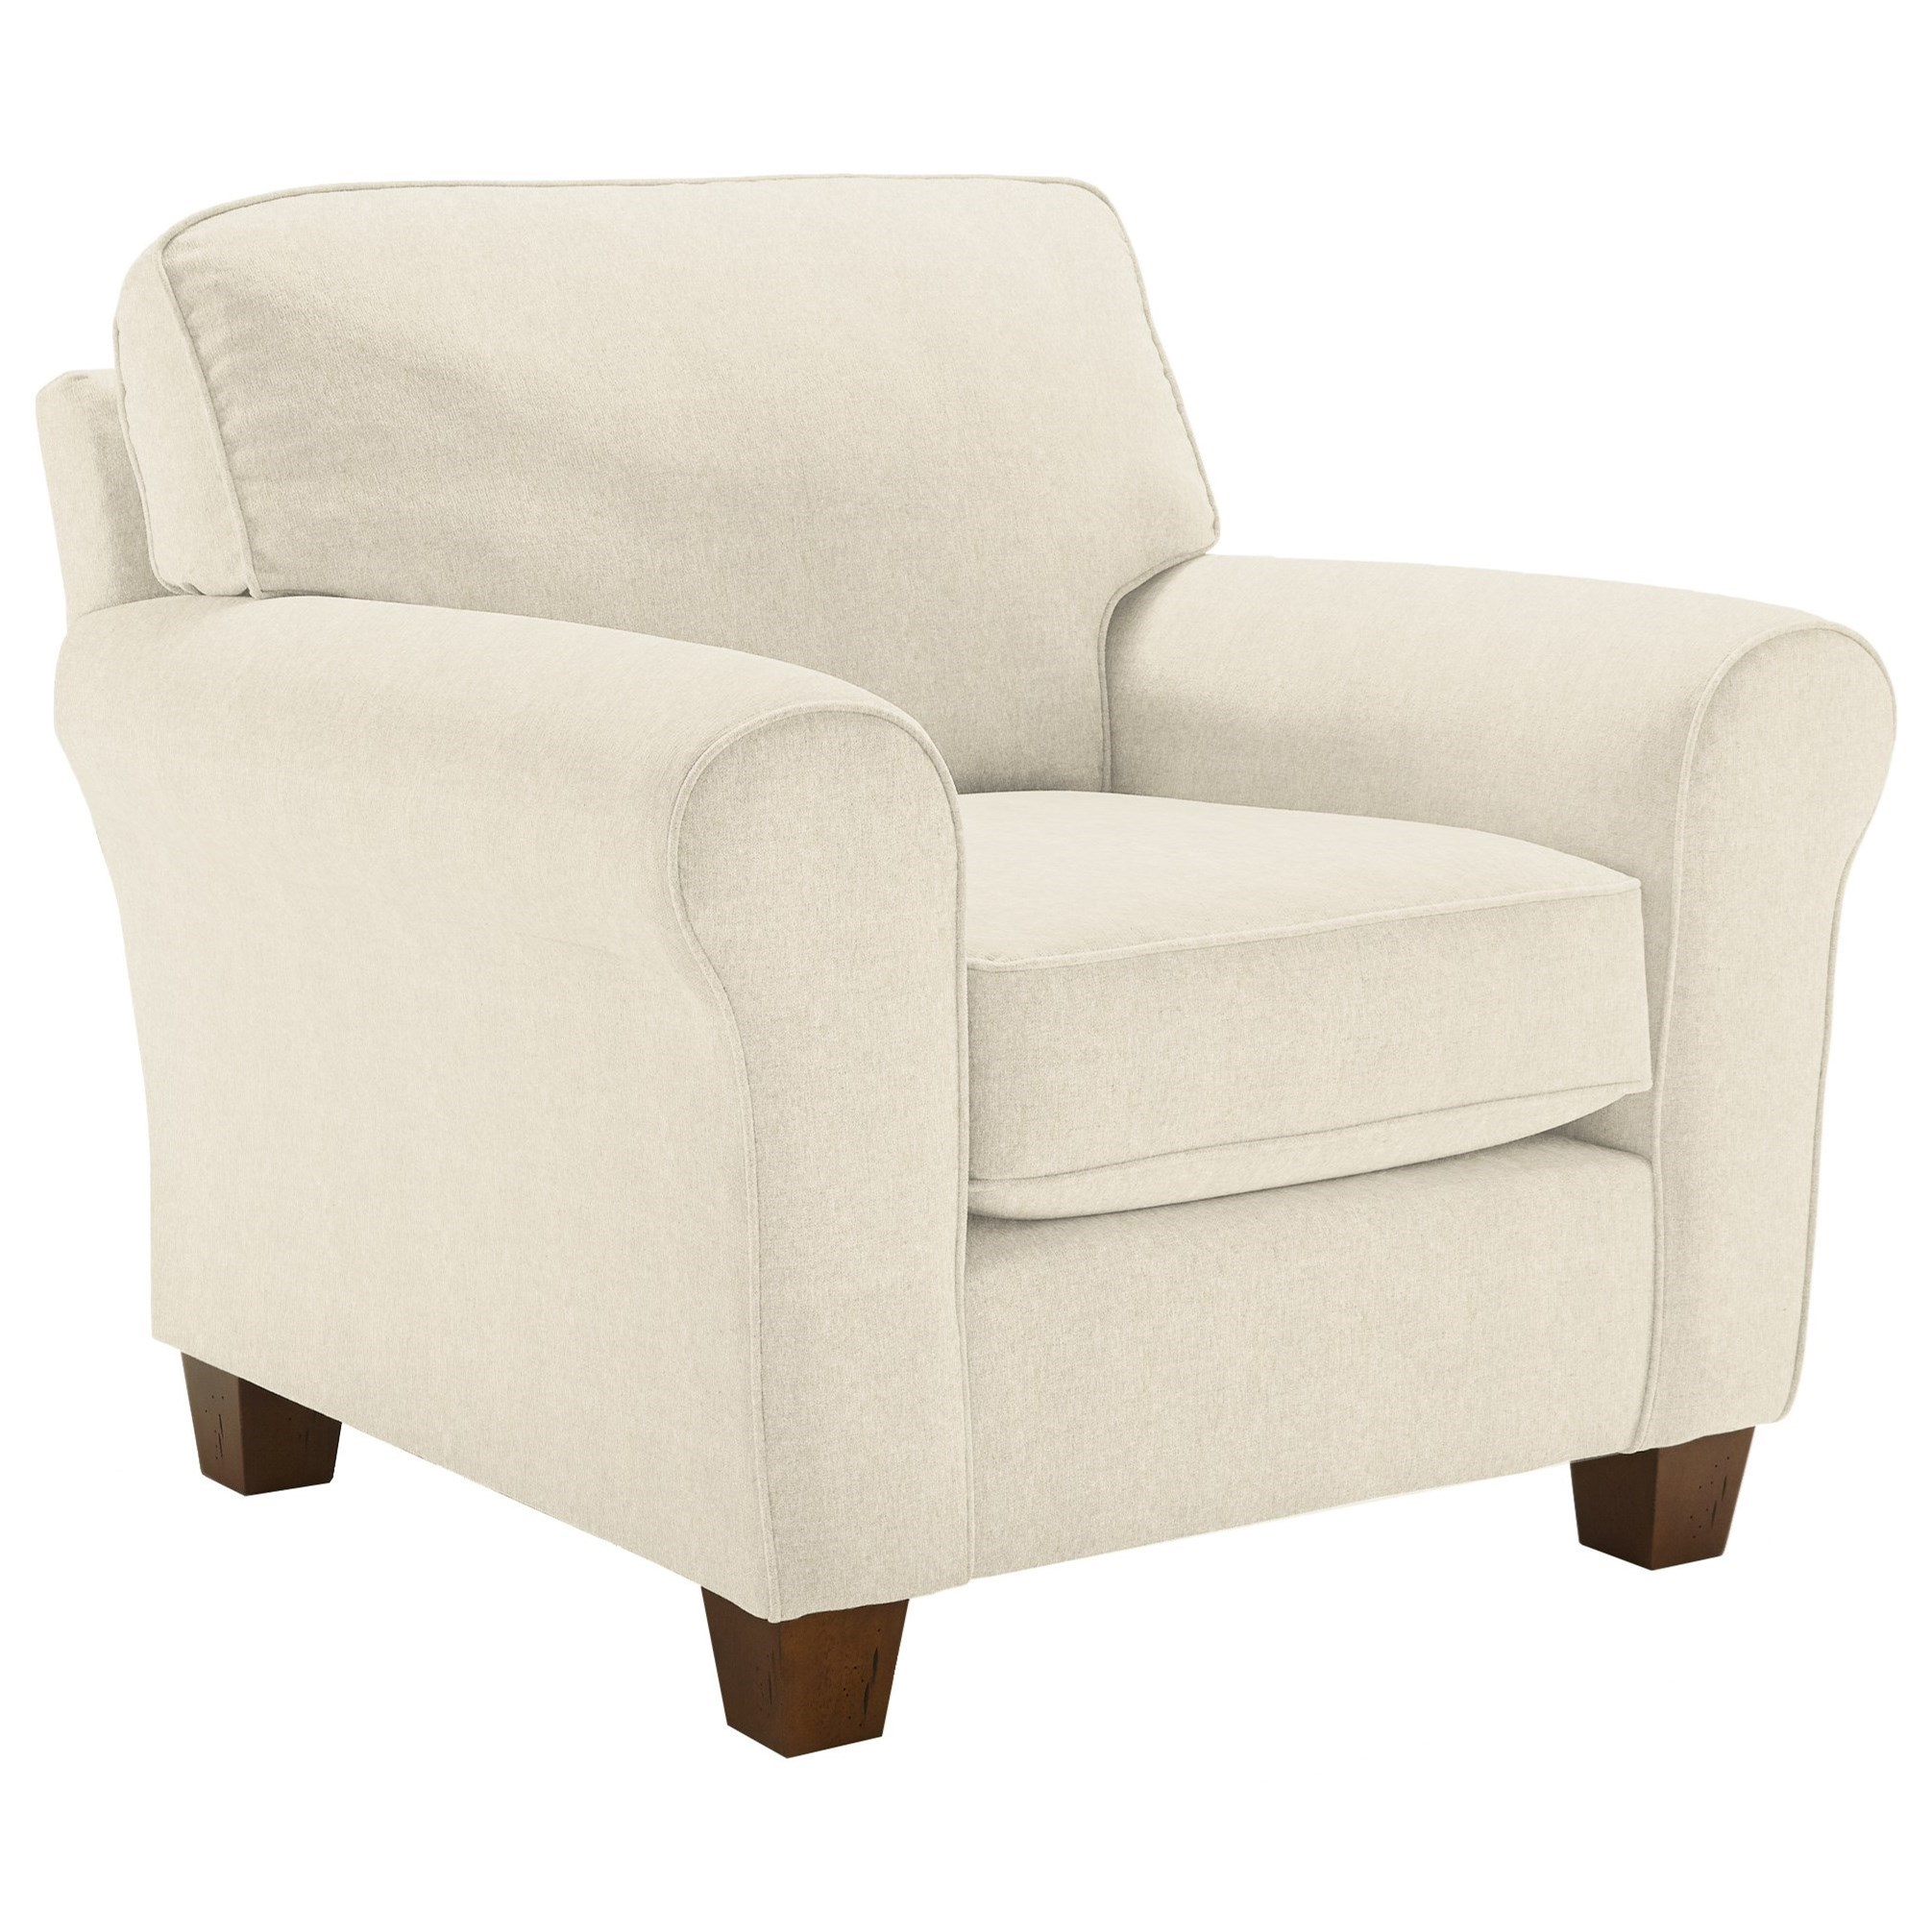 Best Home Furnishings Annabel  <b>Custom</b> Chair - Item Number: C80DP-20777